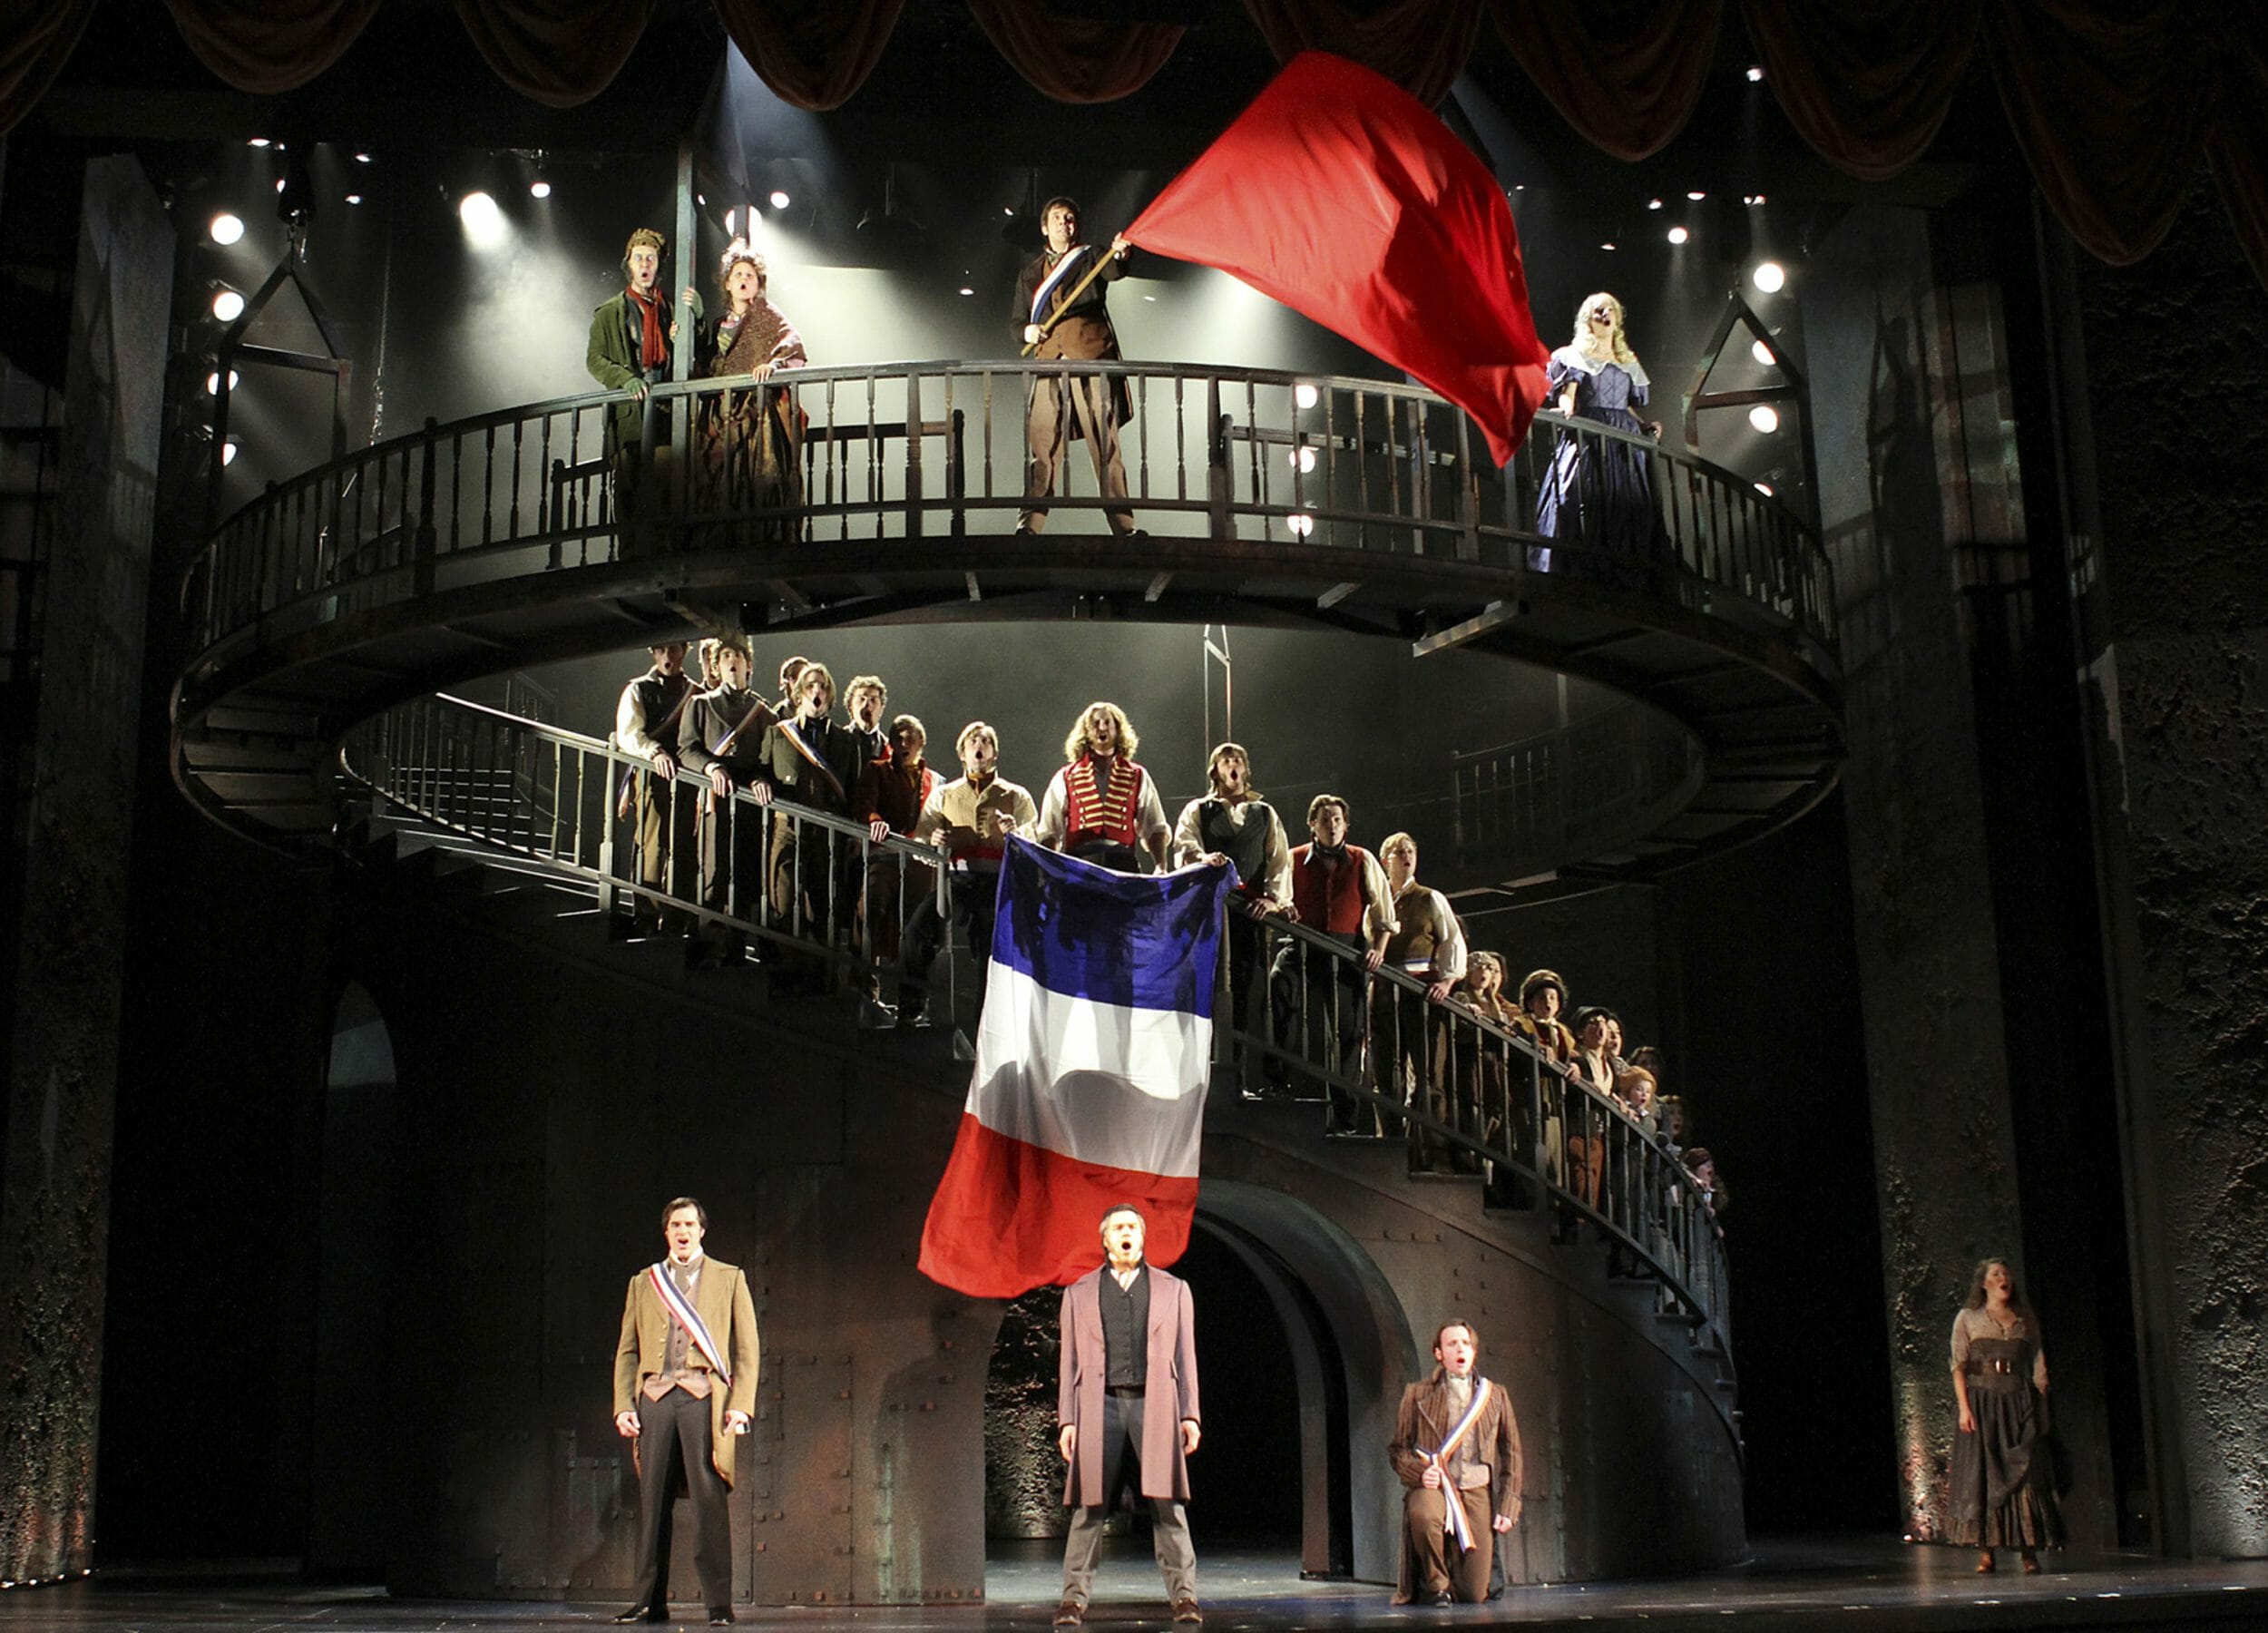 Paramount S Massive Les Mis Is A Revolutionary Sight